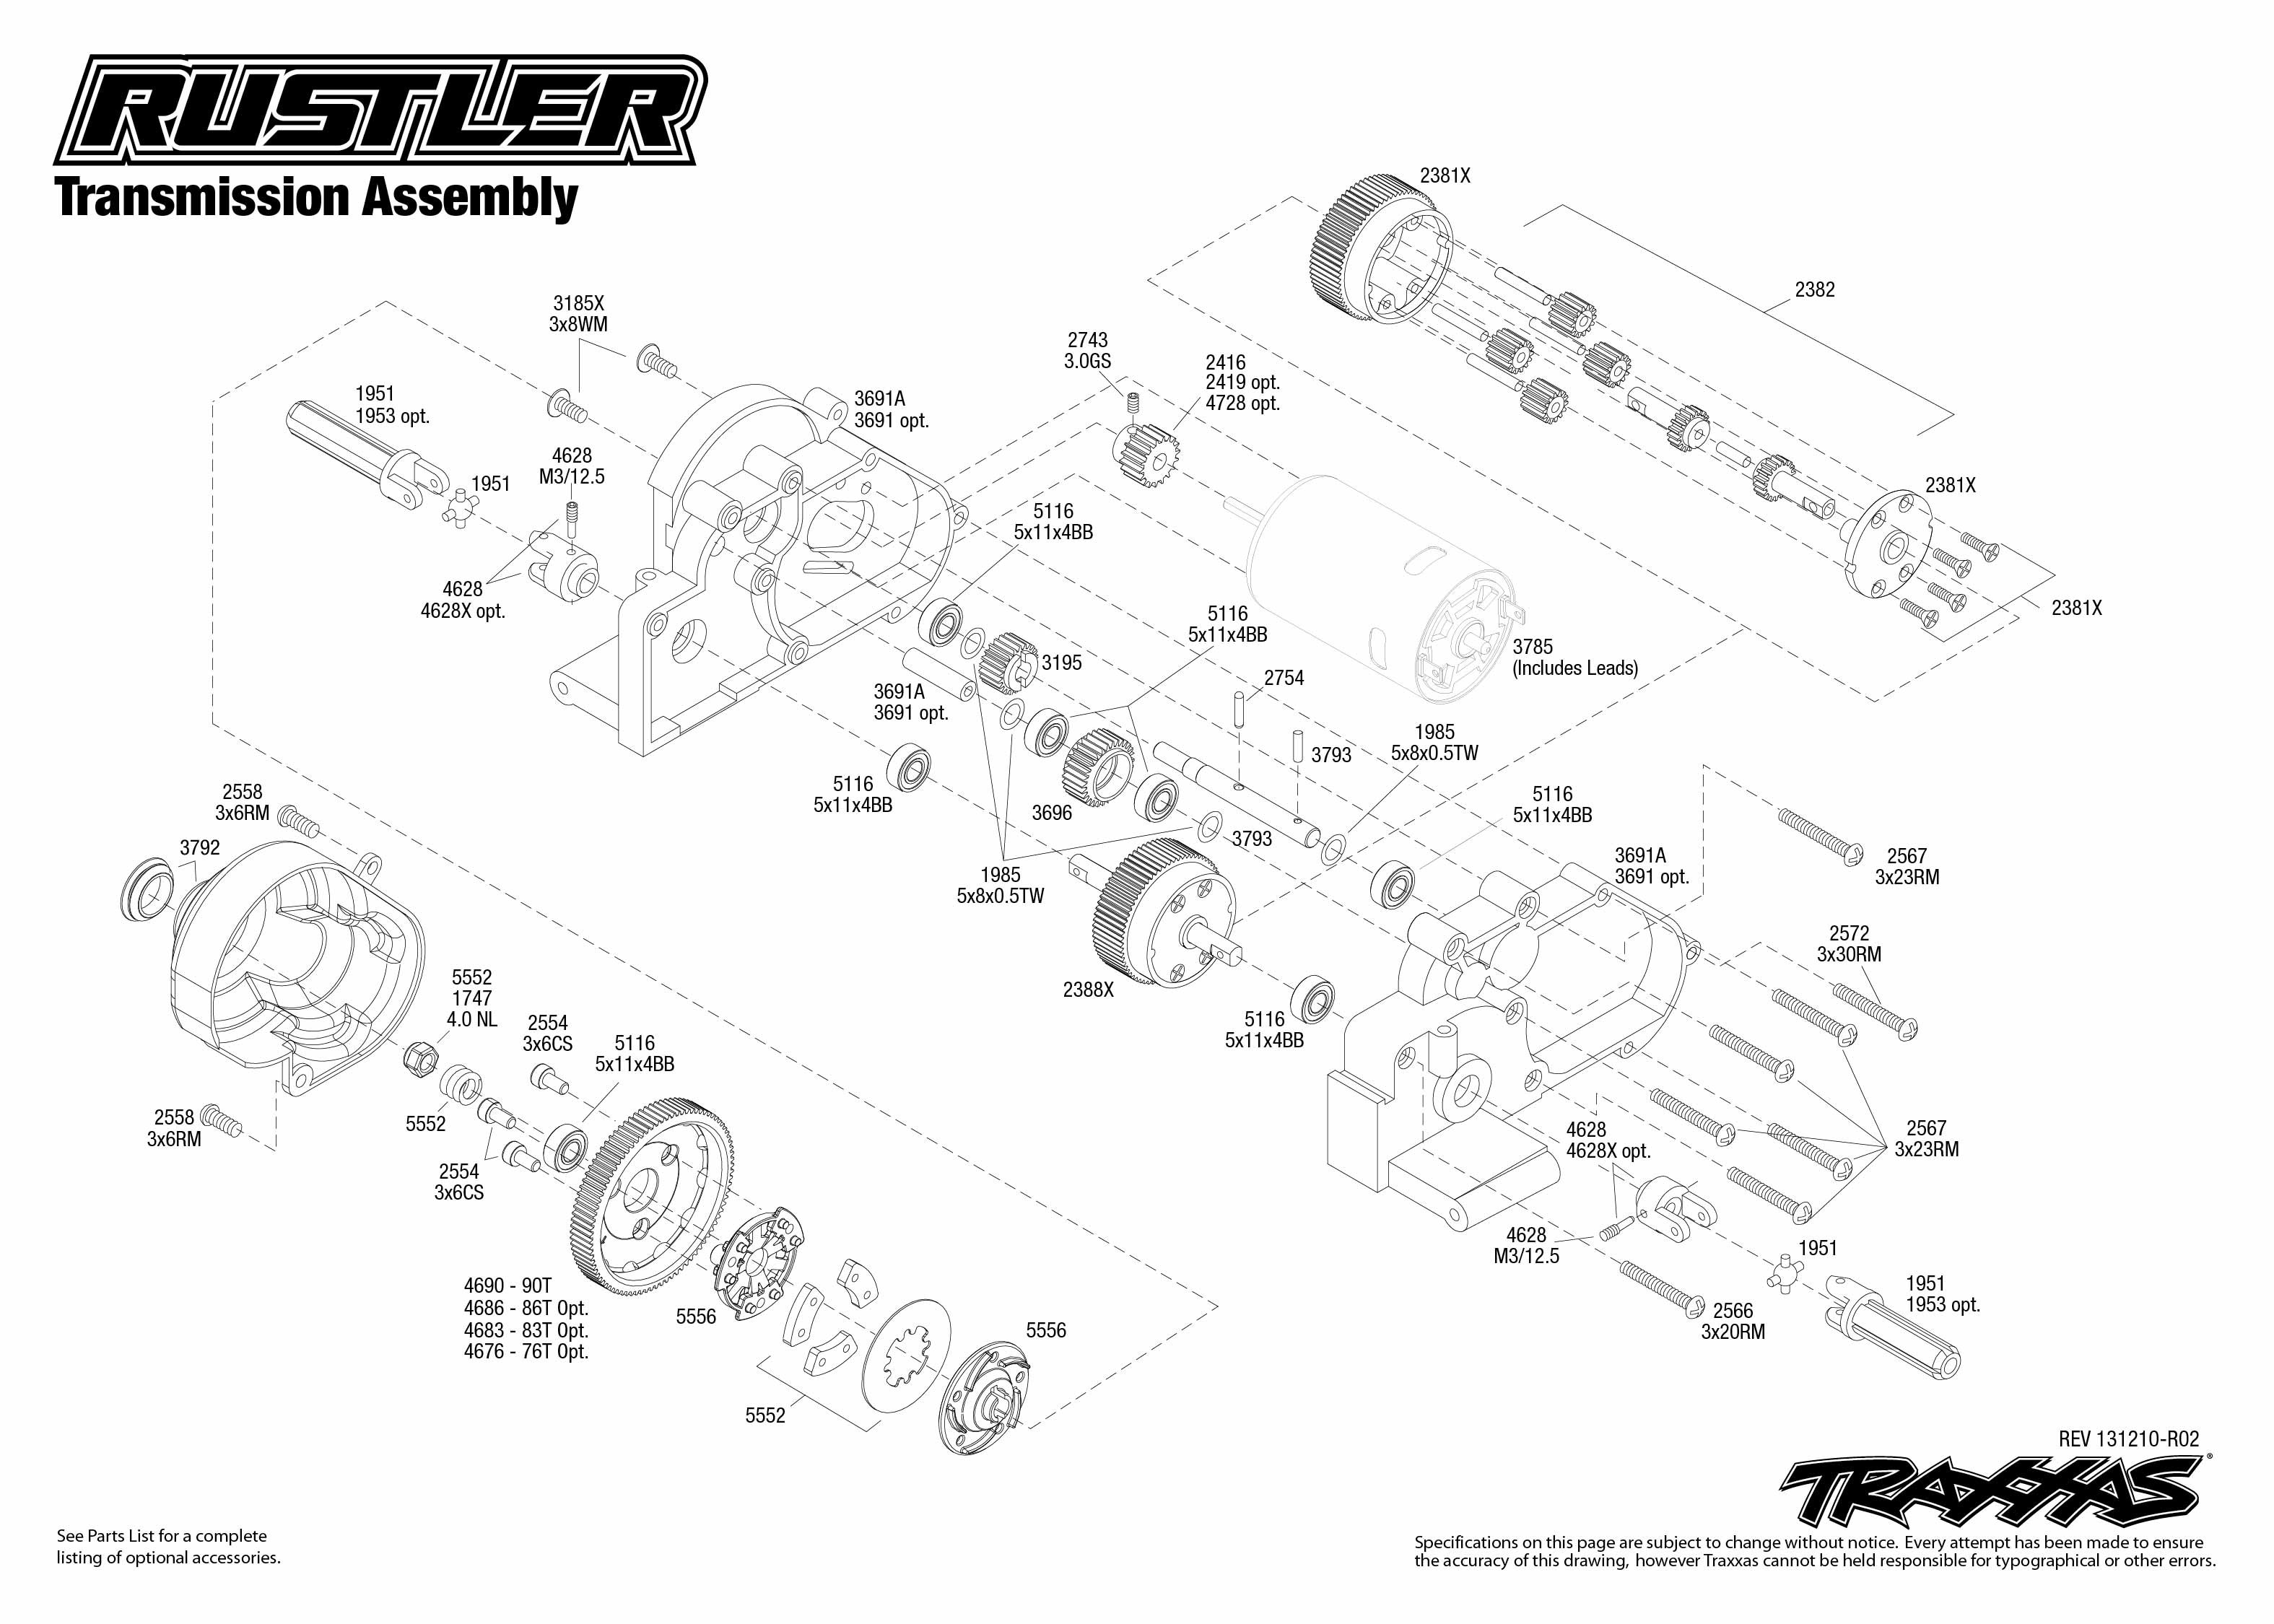 Car Body Part Diagram Image Result for Traxxas Rustler Parts Diagram Of Car Body Part Diagram